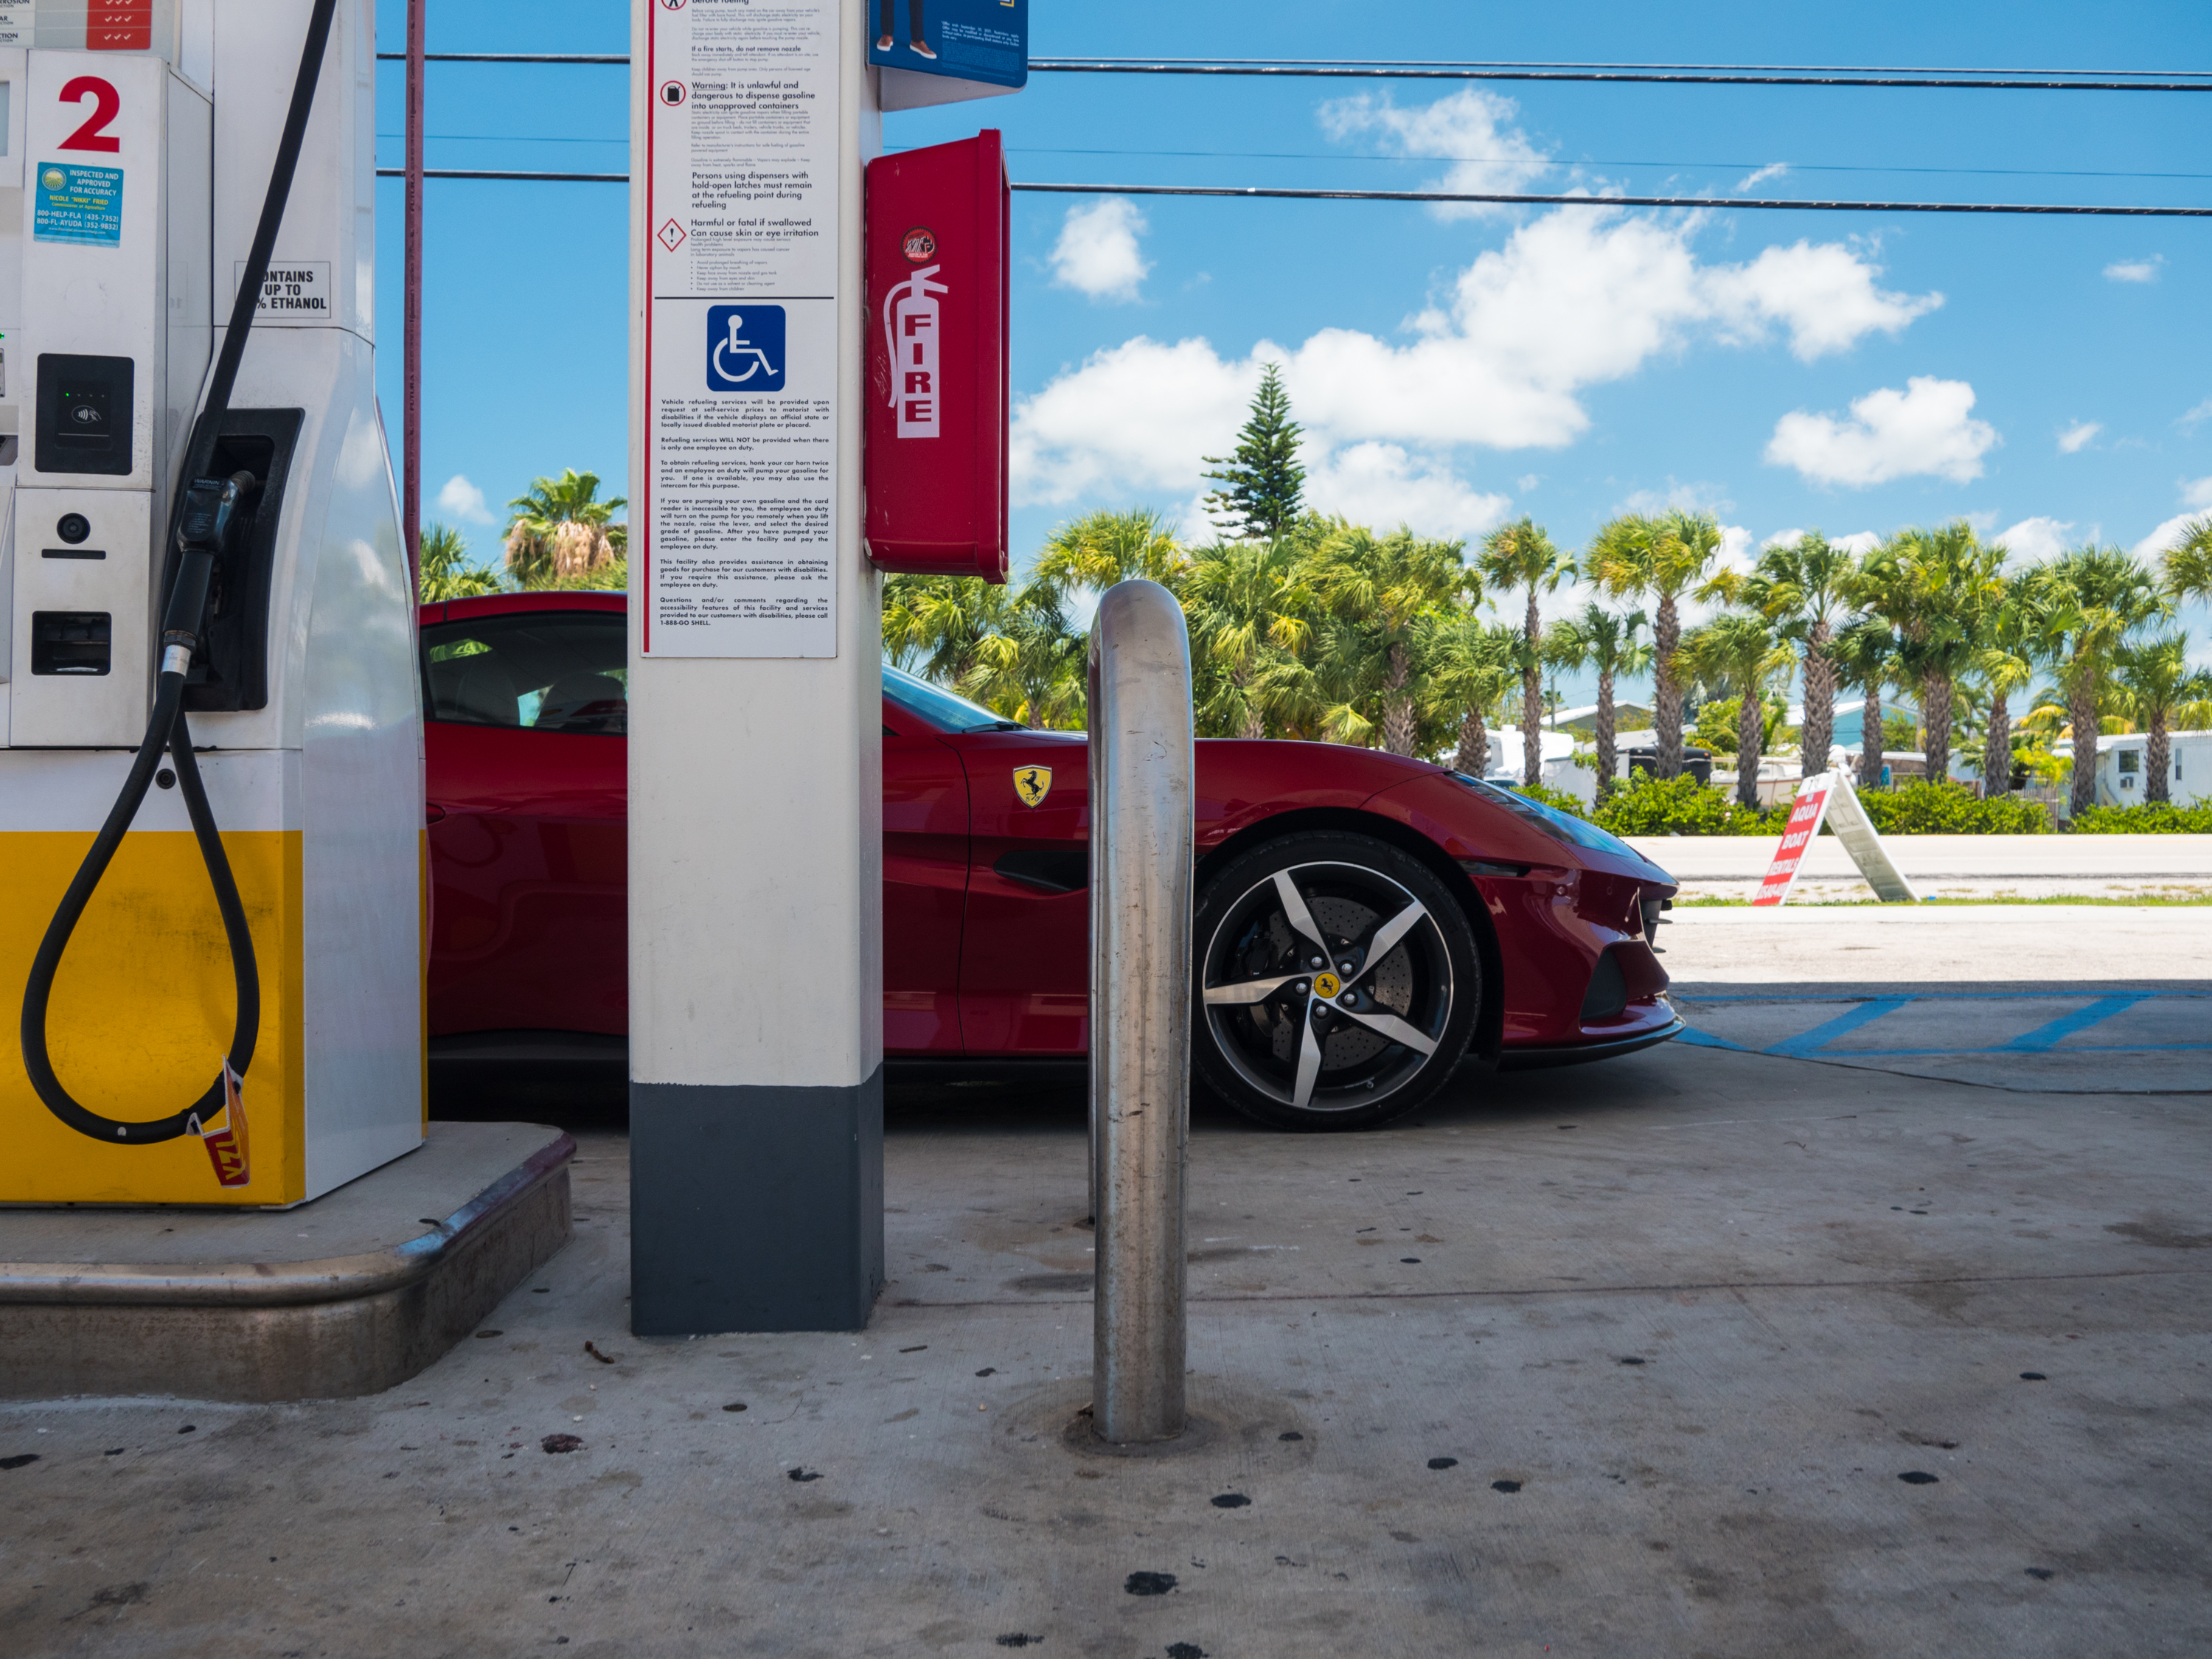 The Portofino M now meets stricter emissions standards in the EU, China, and the US thanks to gasoline particulate filters. It's also slightly more efficient at 16 mpg city, 23 mpg highway, and 19 mpg combined.